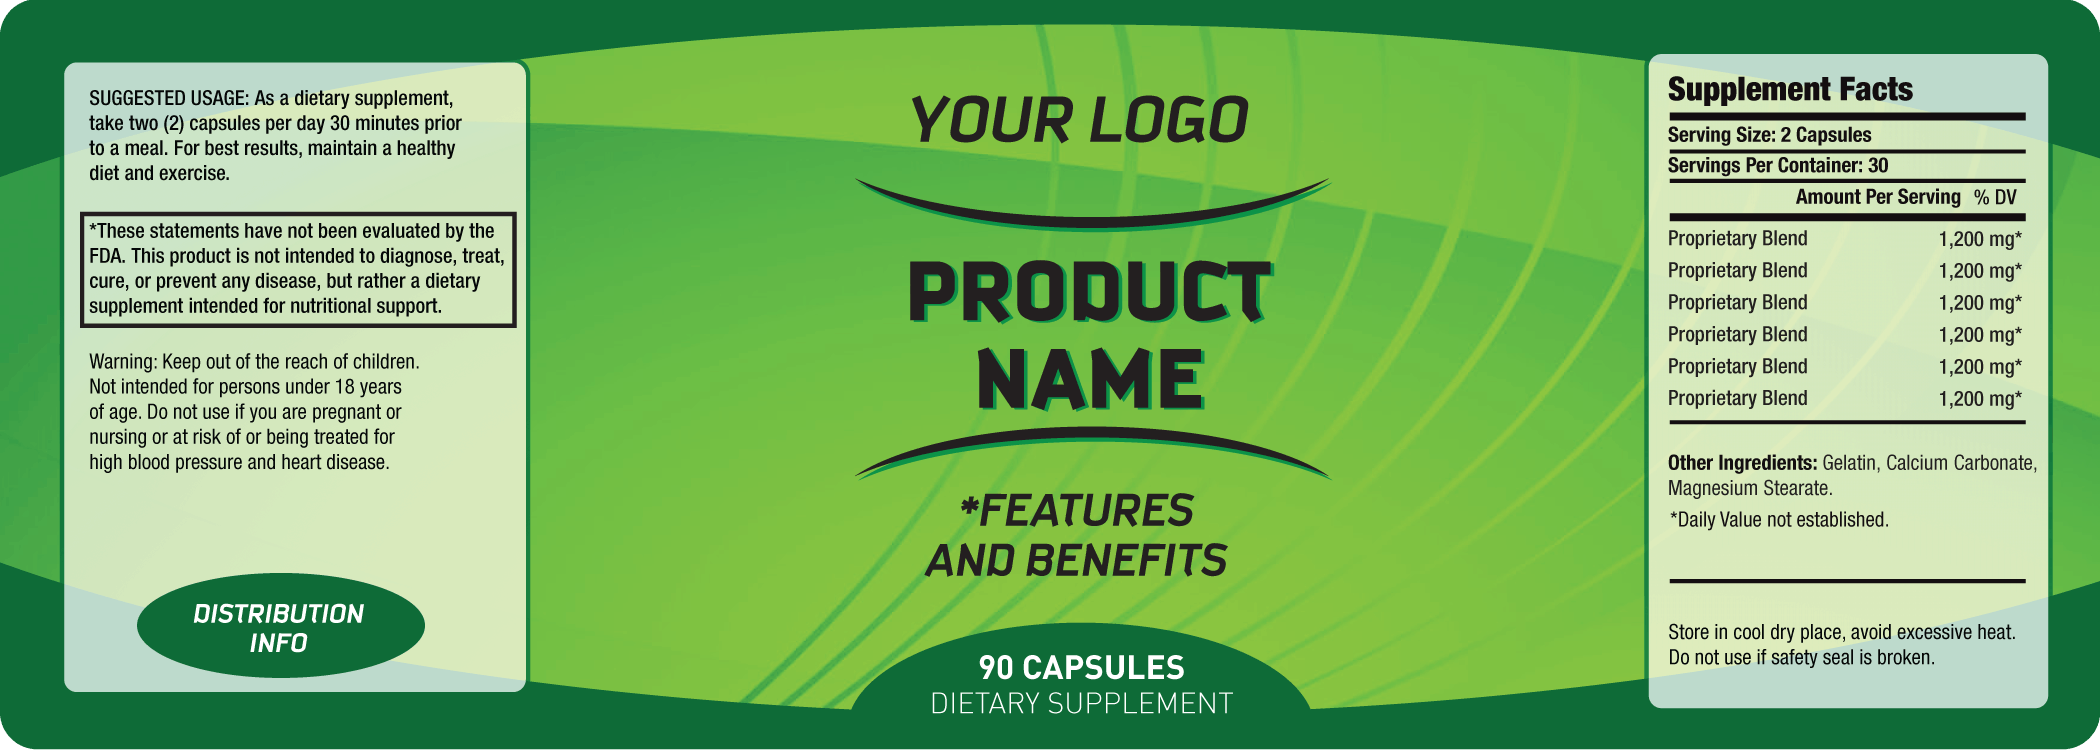 6 free label templates excel pdf formats for Supplement facts template